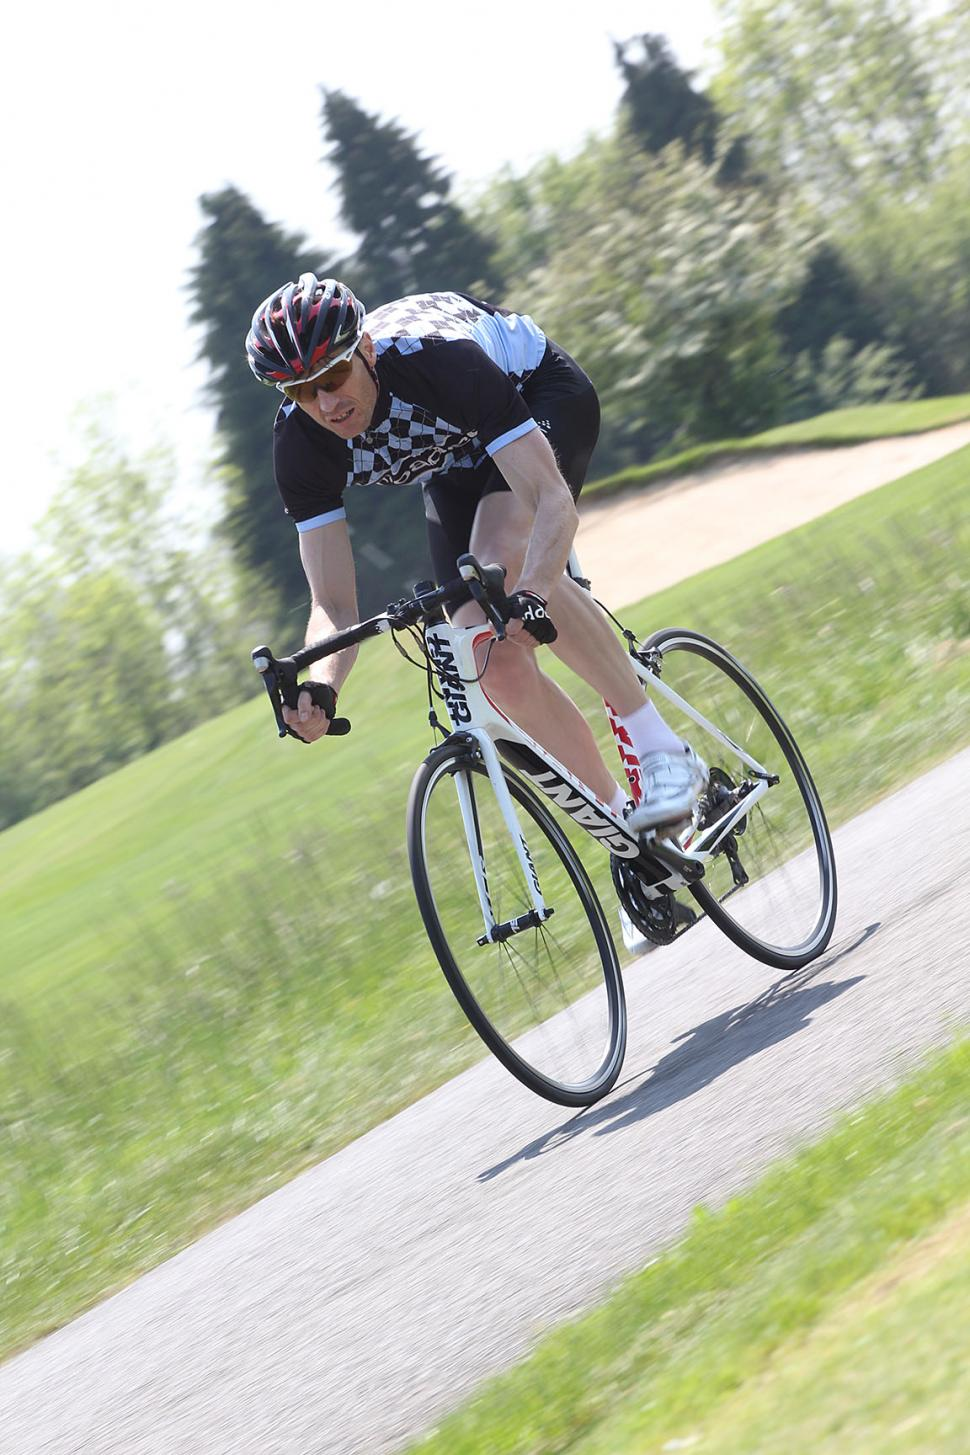 Review Giant Tcr Advanced 3 2012 Bicycle Lightings The Is A Fast Precise Road Bike That Offers Smooth Ride We Like It Lot